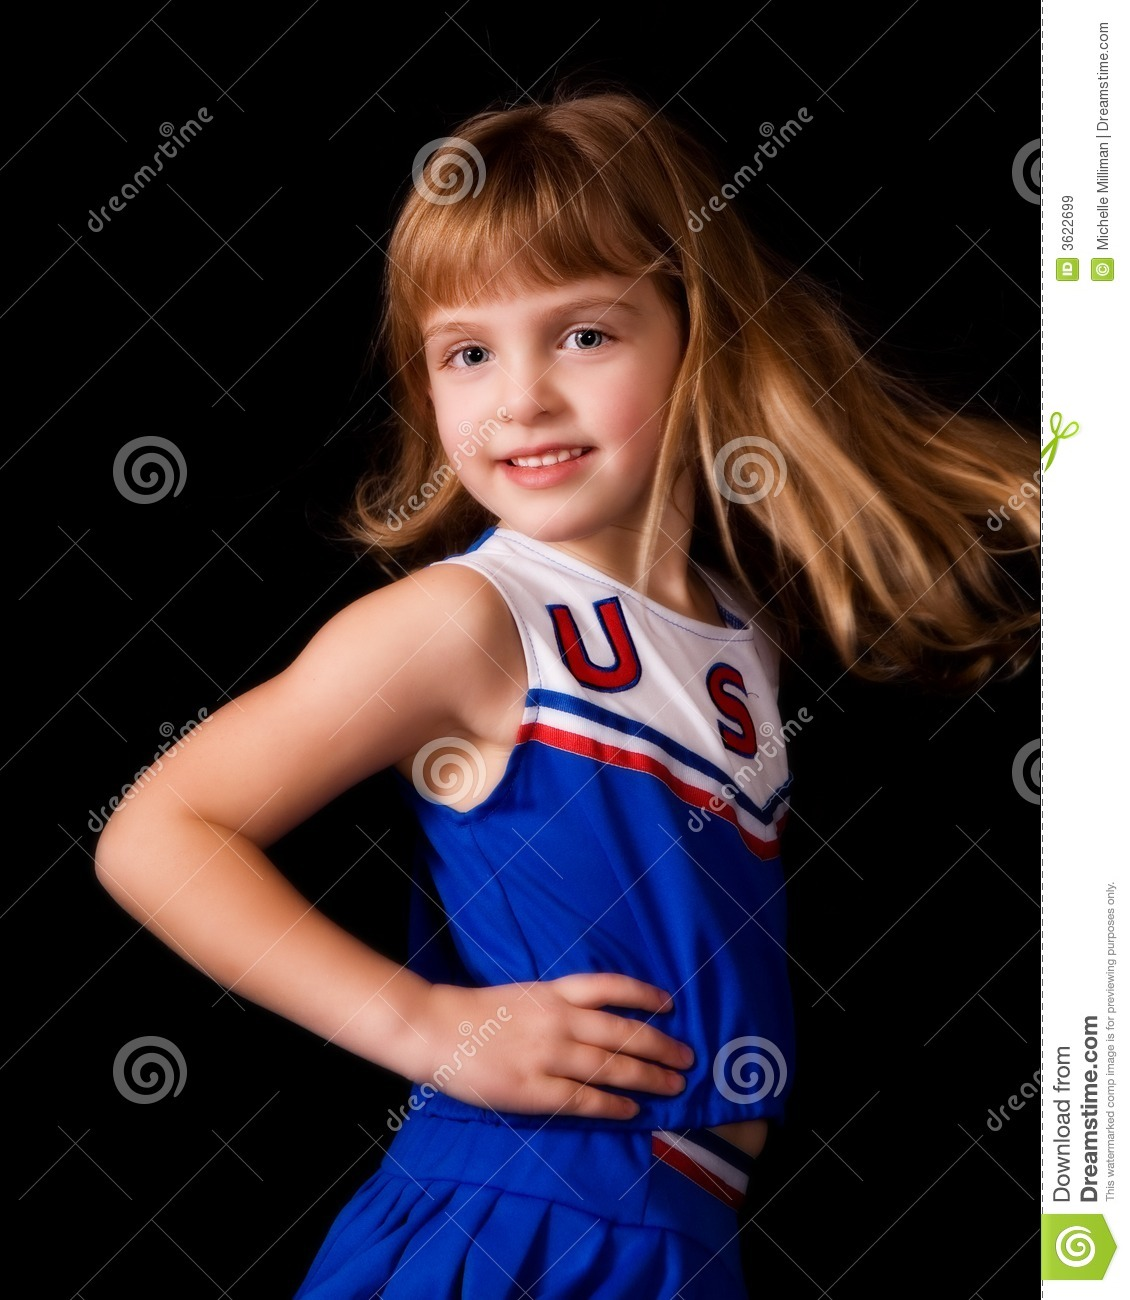 cheerleading twirl royalty free stock images image 3622699 patriotic clipart free patriotic clipart borders